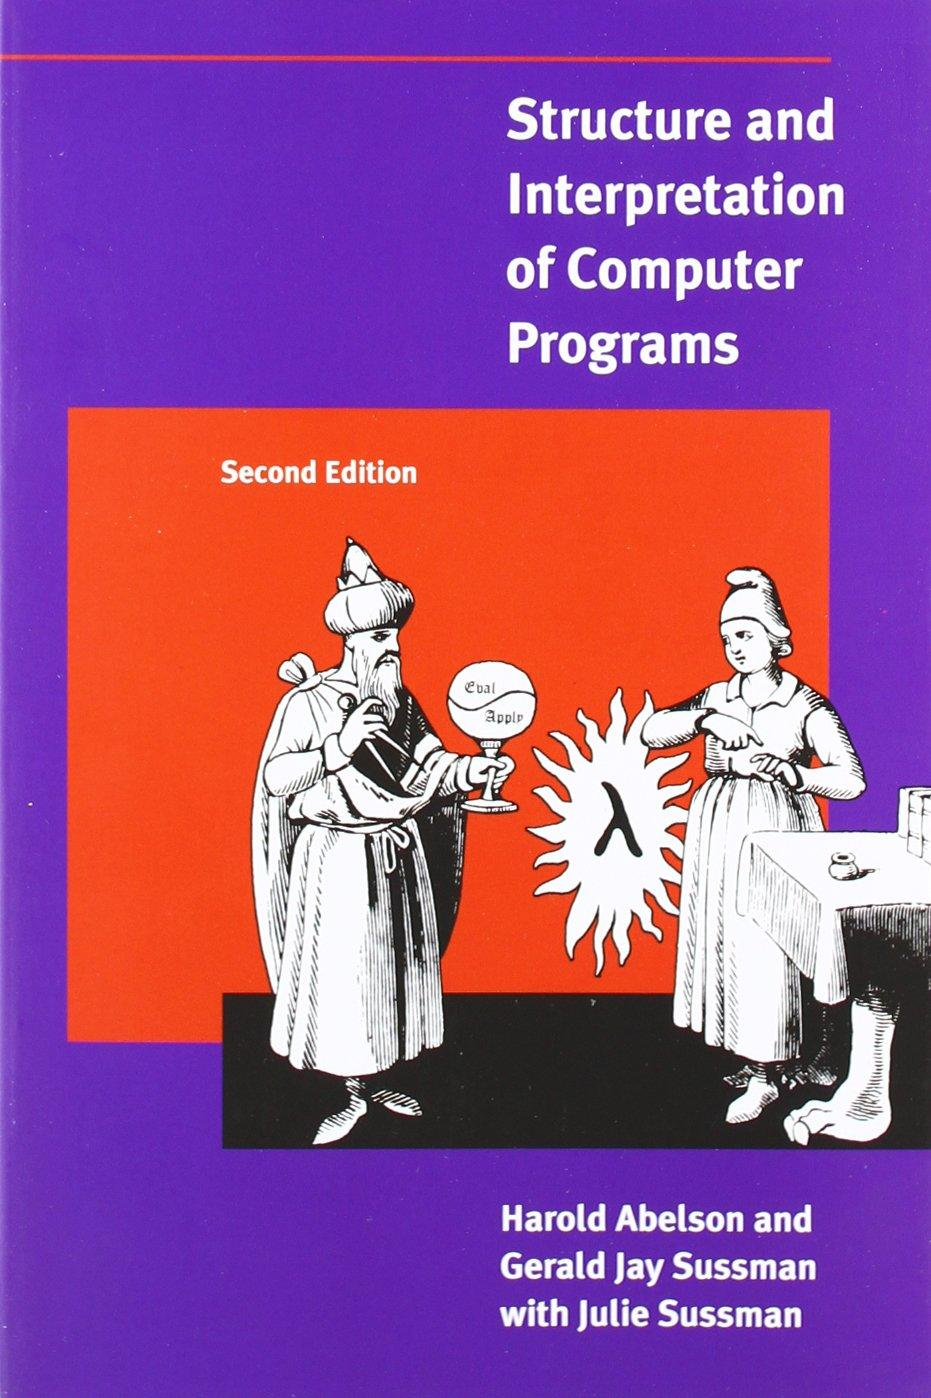 functional programming resources Scheme (a modern dialect of Lisp) impure FP with an emphasis on metaprogramming and linguistic abstraction good for prototyping new language semantics the best book